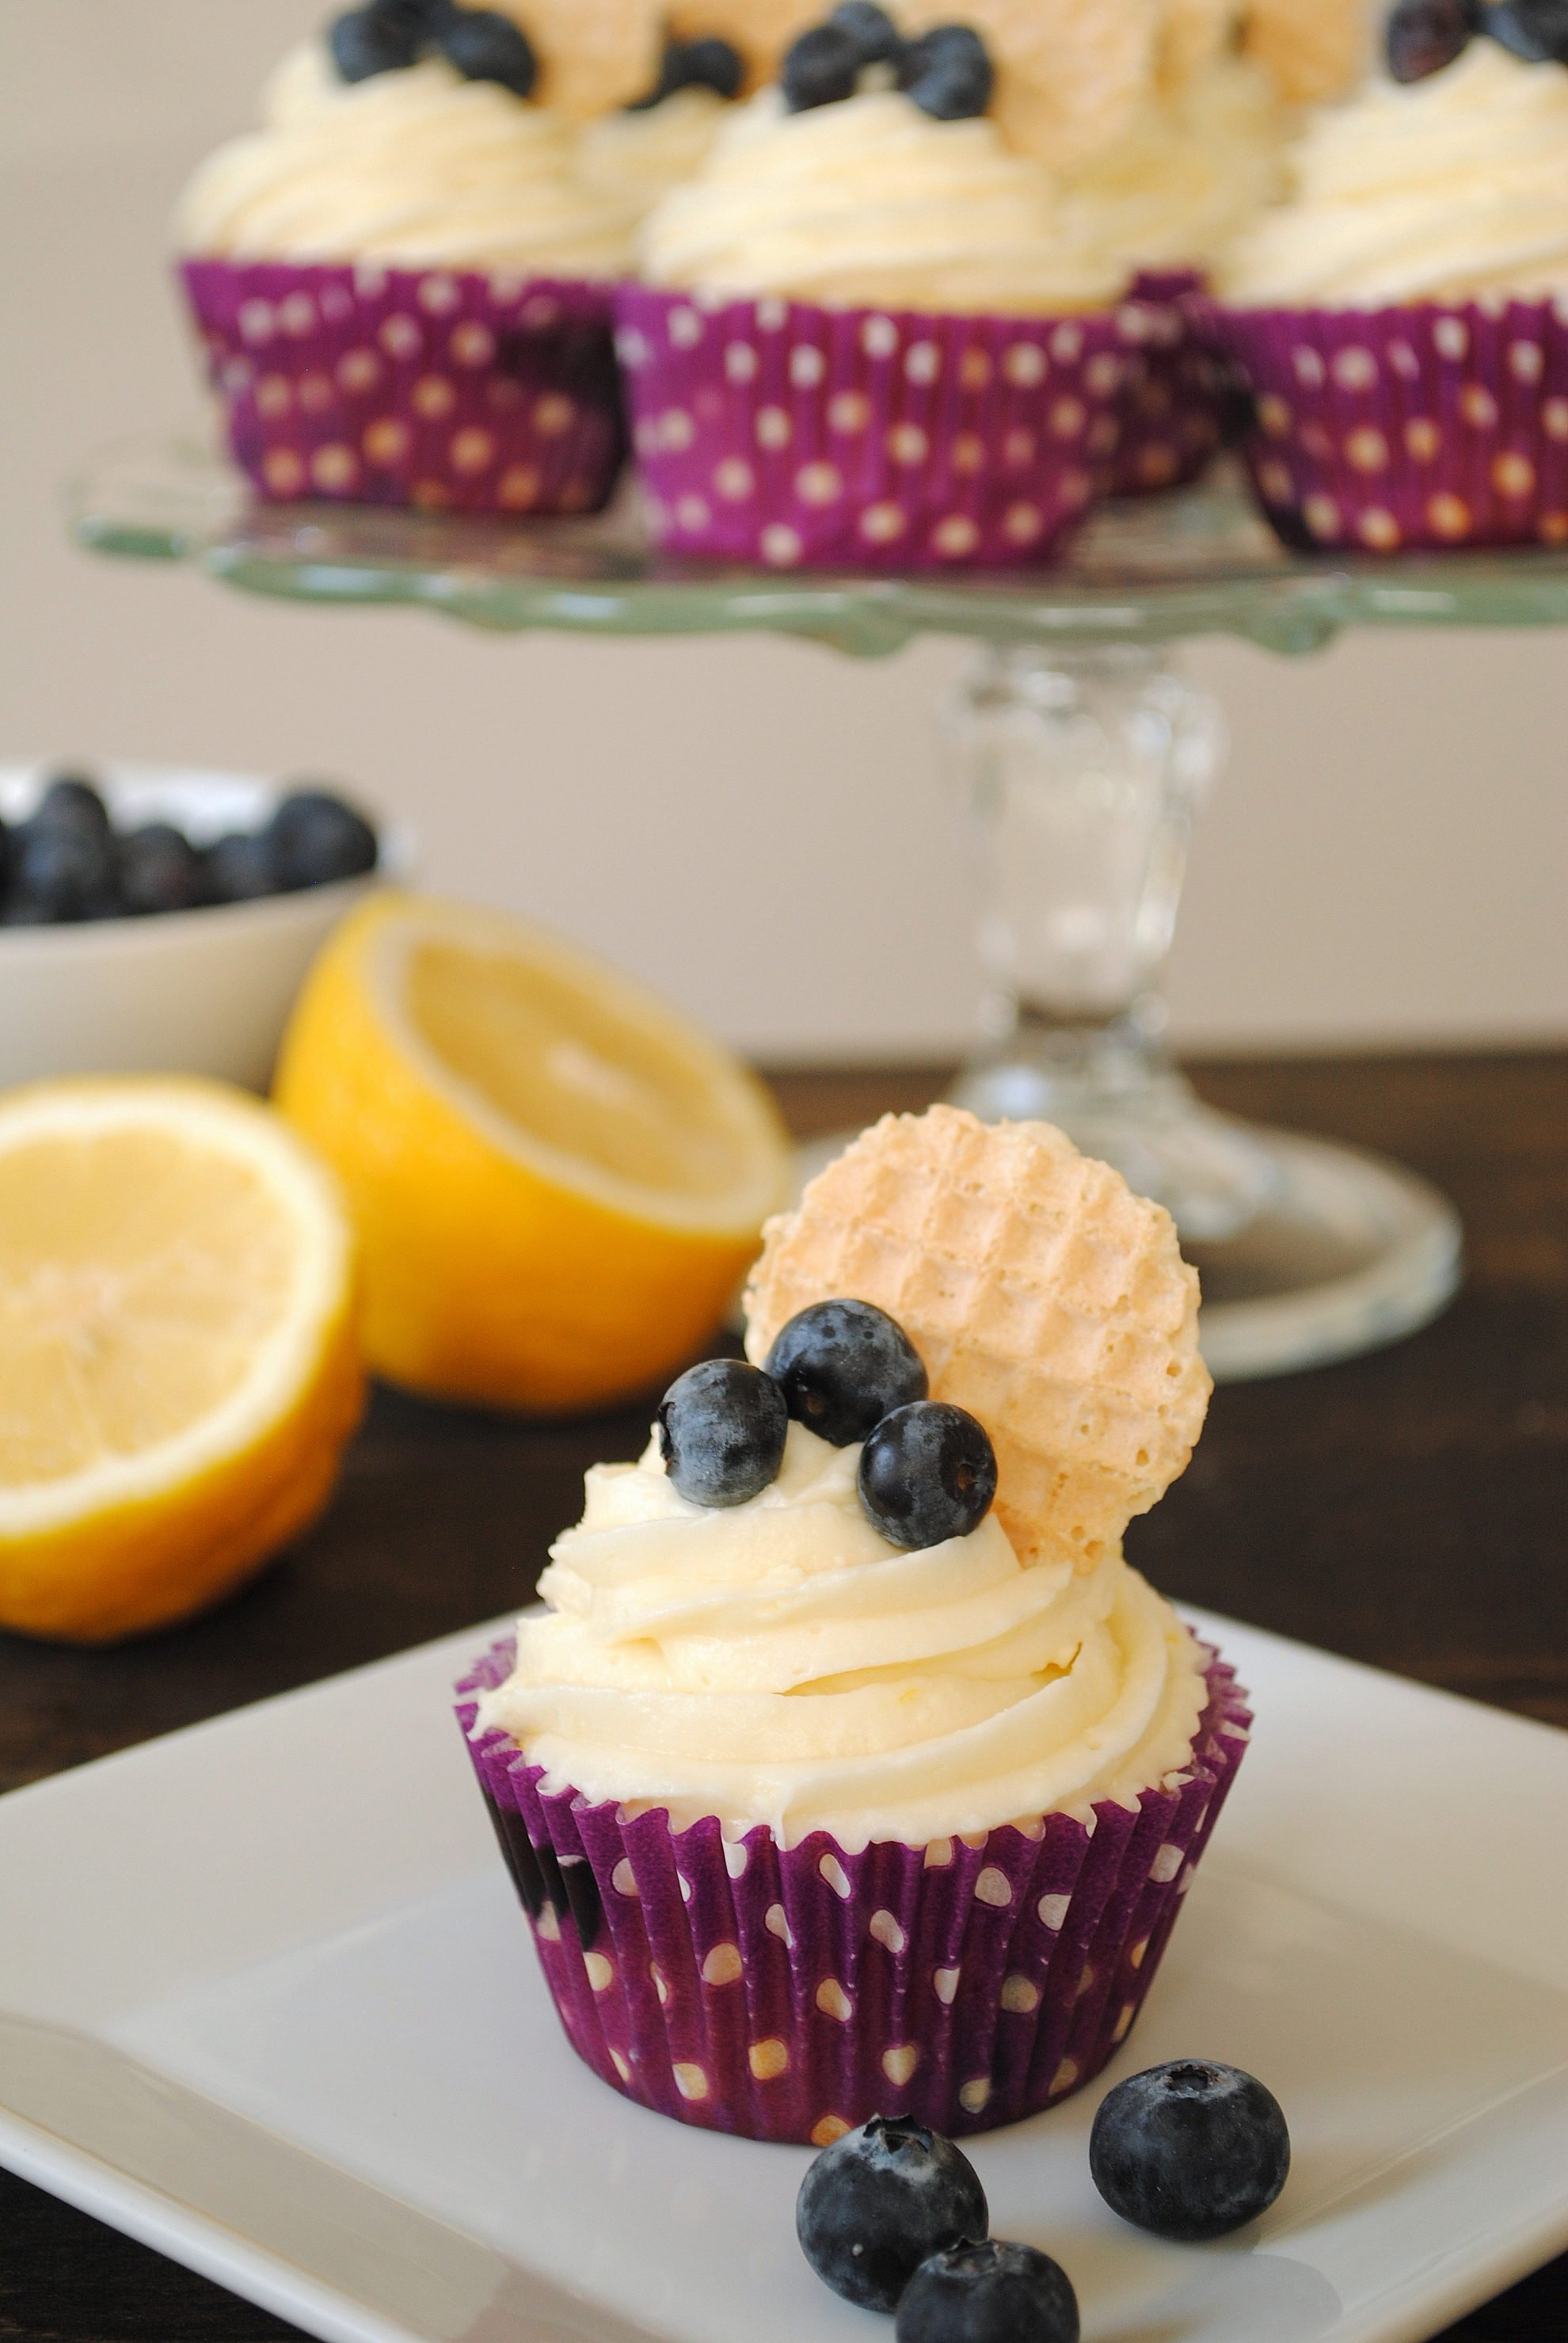 Blueberry Cupcakes with Lemon Cream Cheese Frosting - Lemon-flecked Greek yogurt blueberry cupcakes with lemon cream cheese frosting. | foxeslovelemons.com